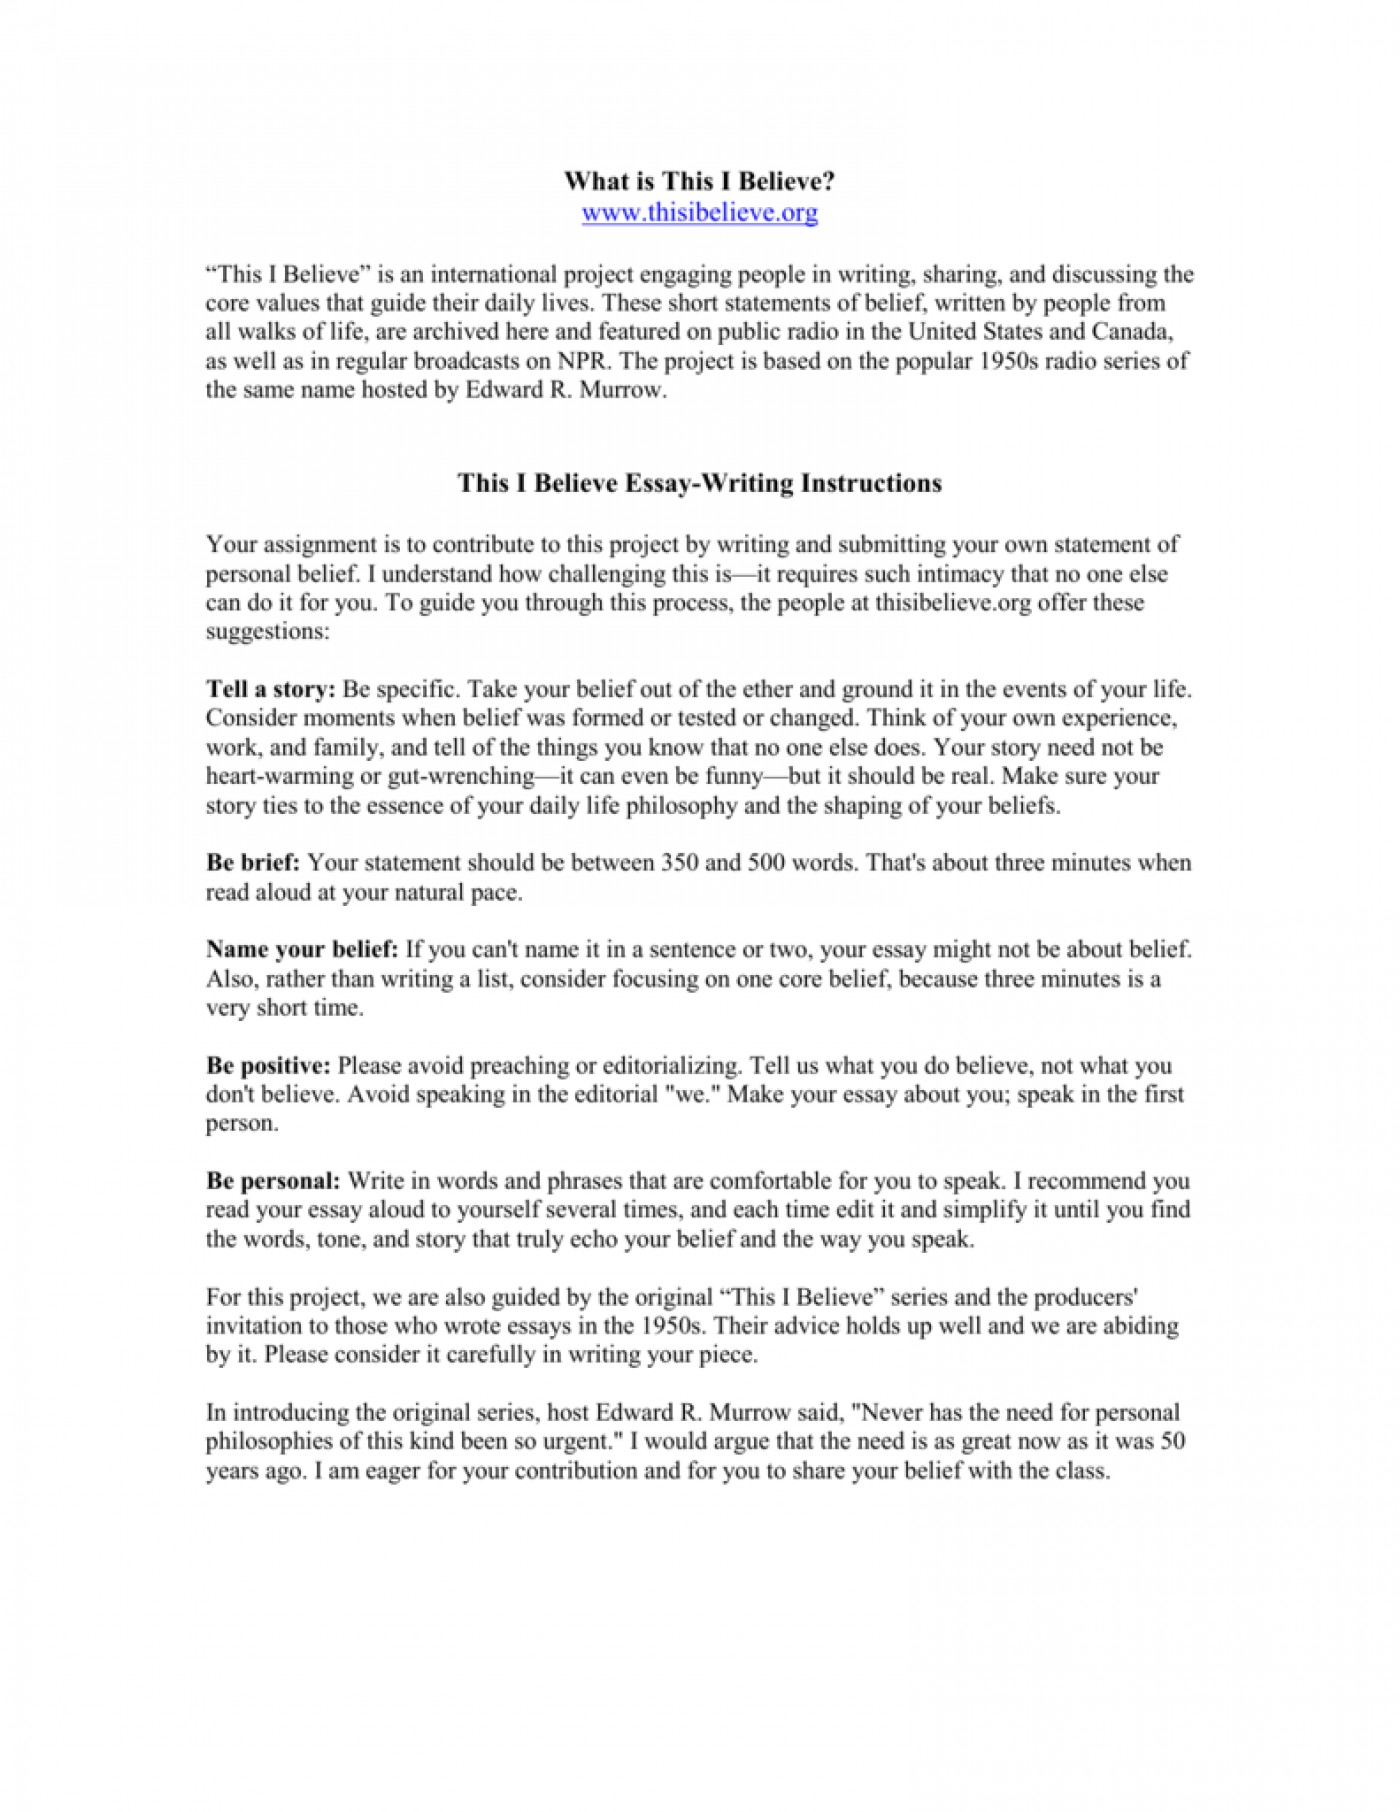 009 Essay Example How To Write This I Believe 008807226 1 Fantastic A What On Things 1400